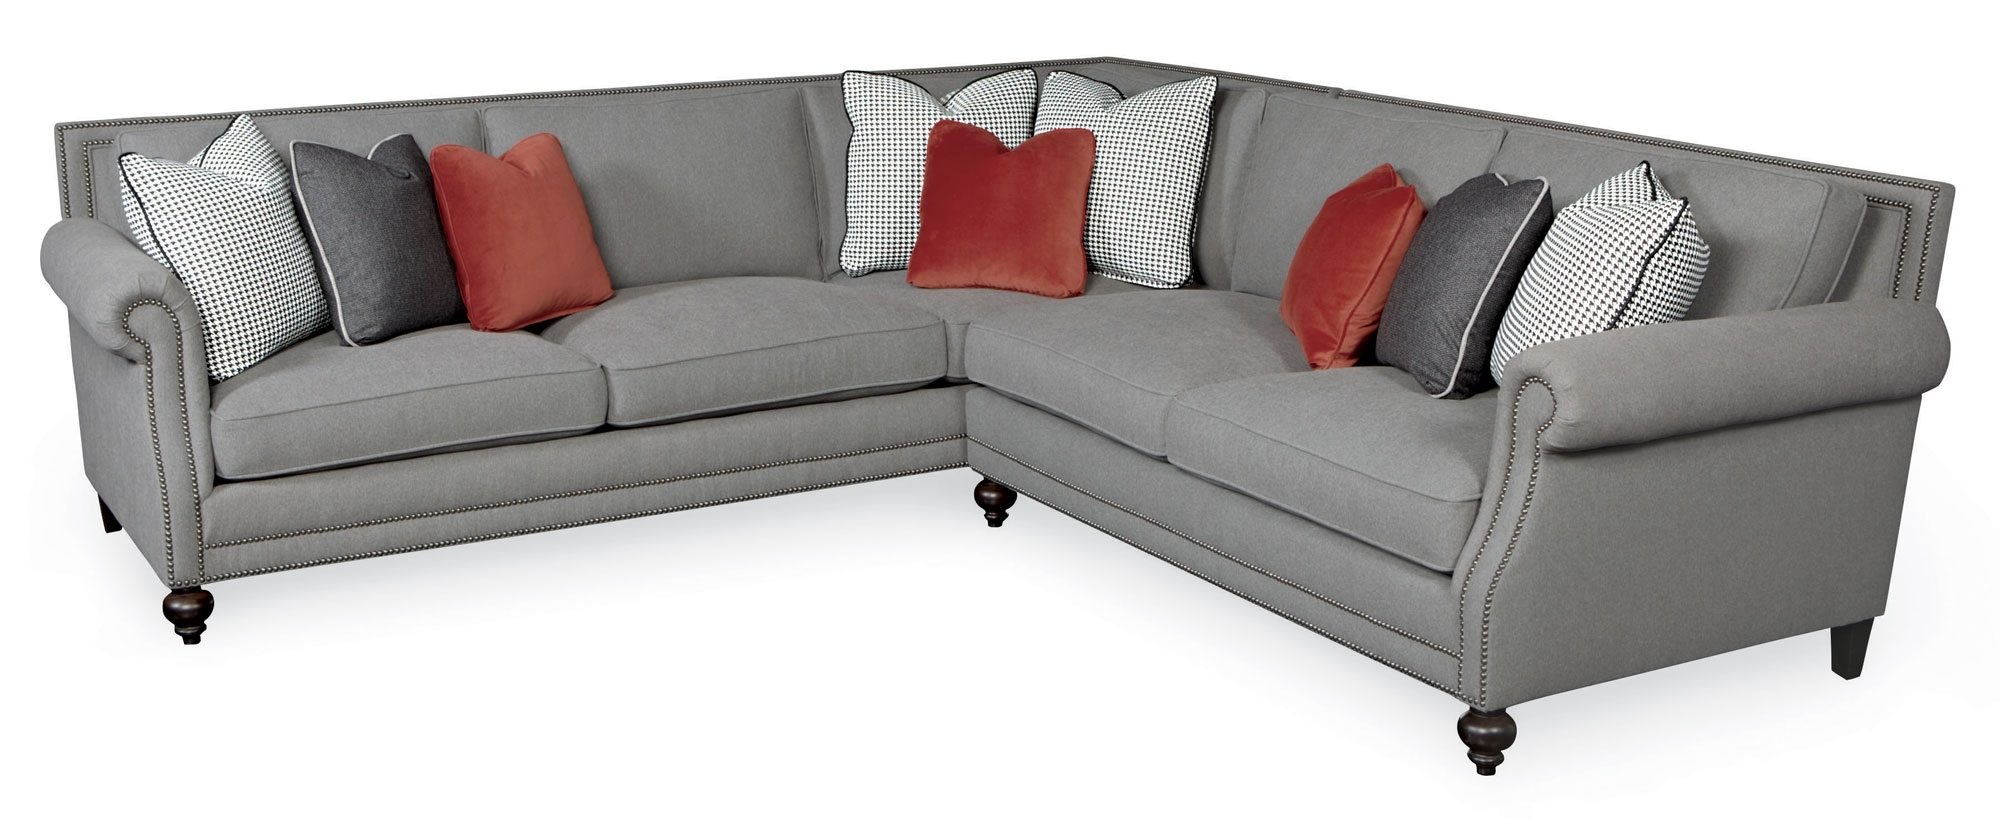 Sectional Sofas With Nailheads Throughout Favorite Sectional Sofa Design: Nailhead Sectional Sofa Fabric Leather (View 5 of 20)